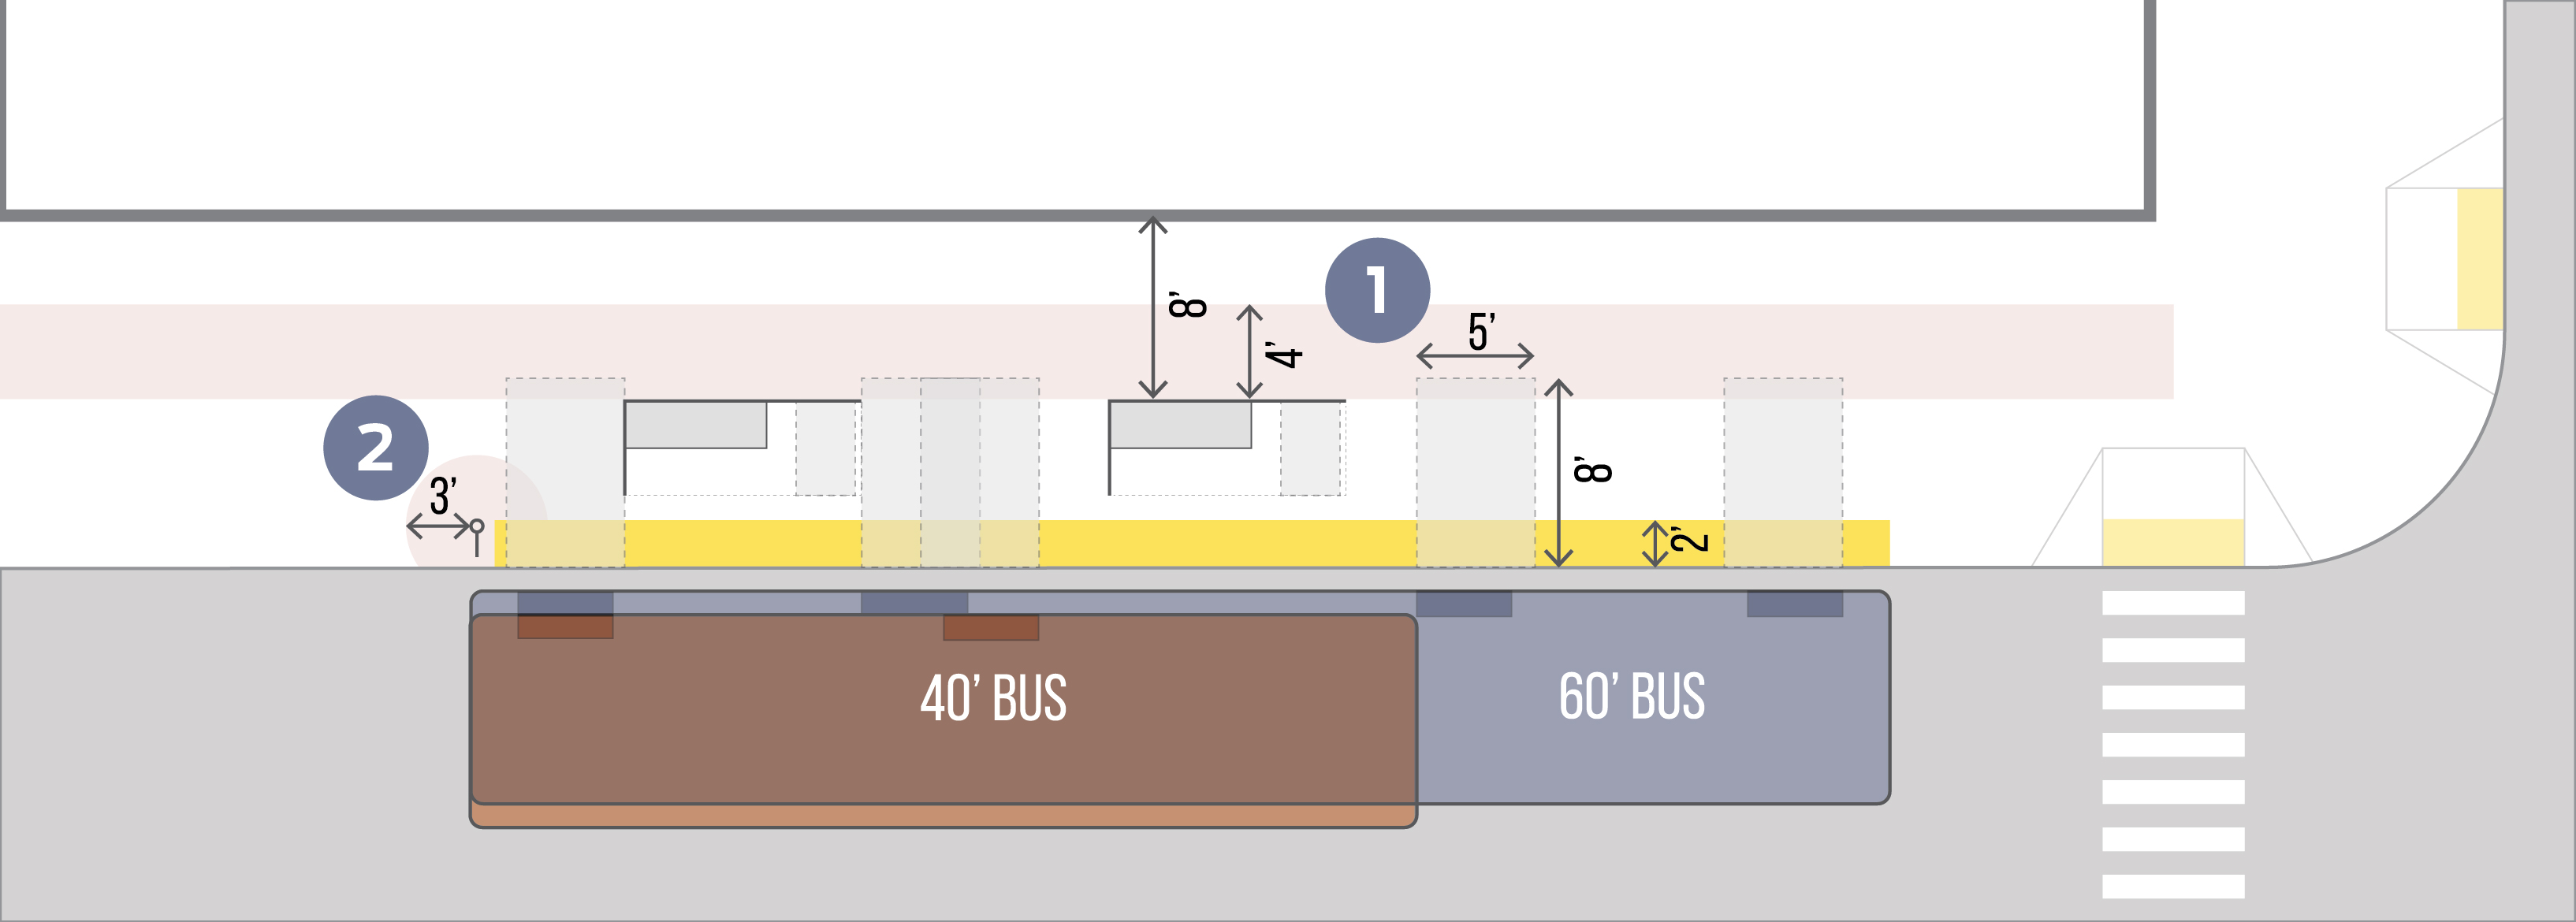 Shelter placement diagrams-01